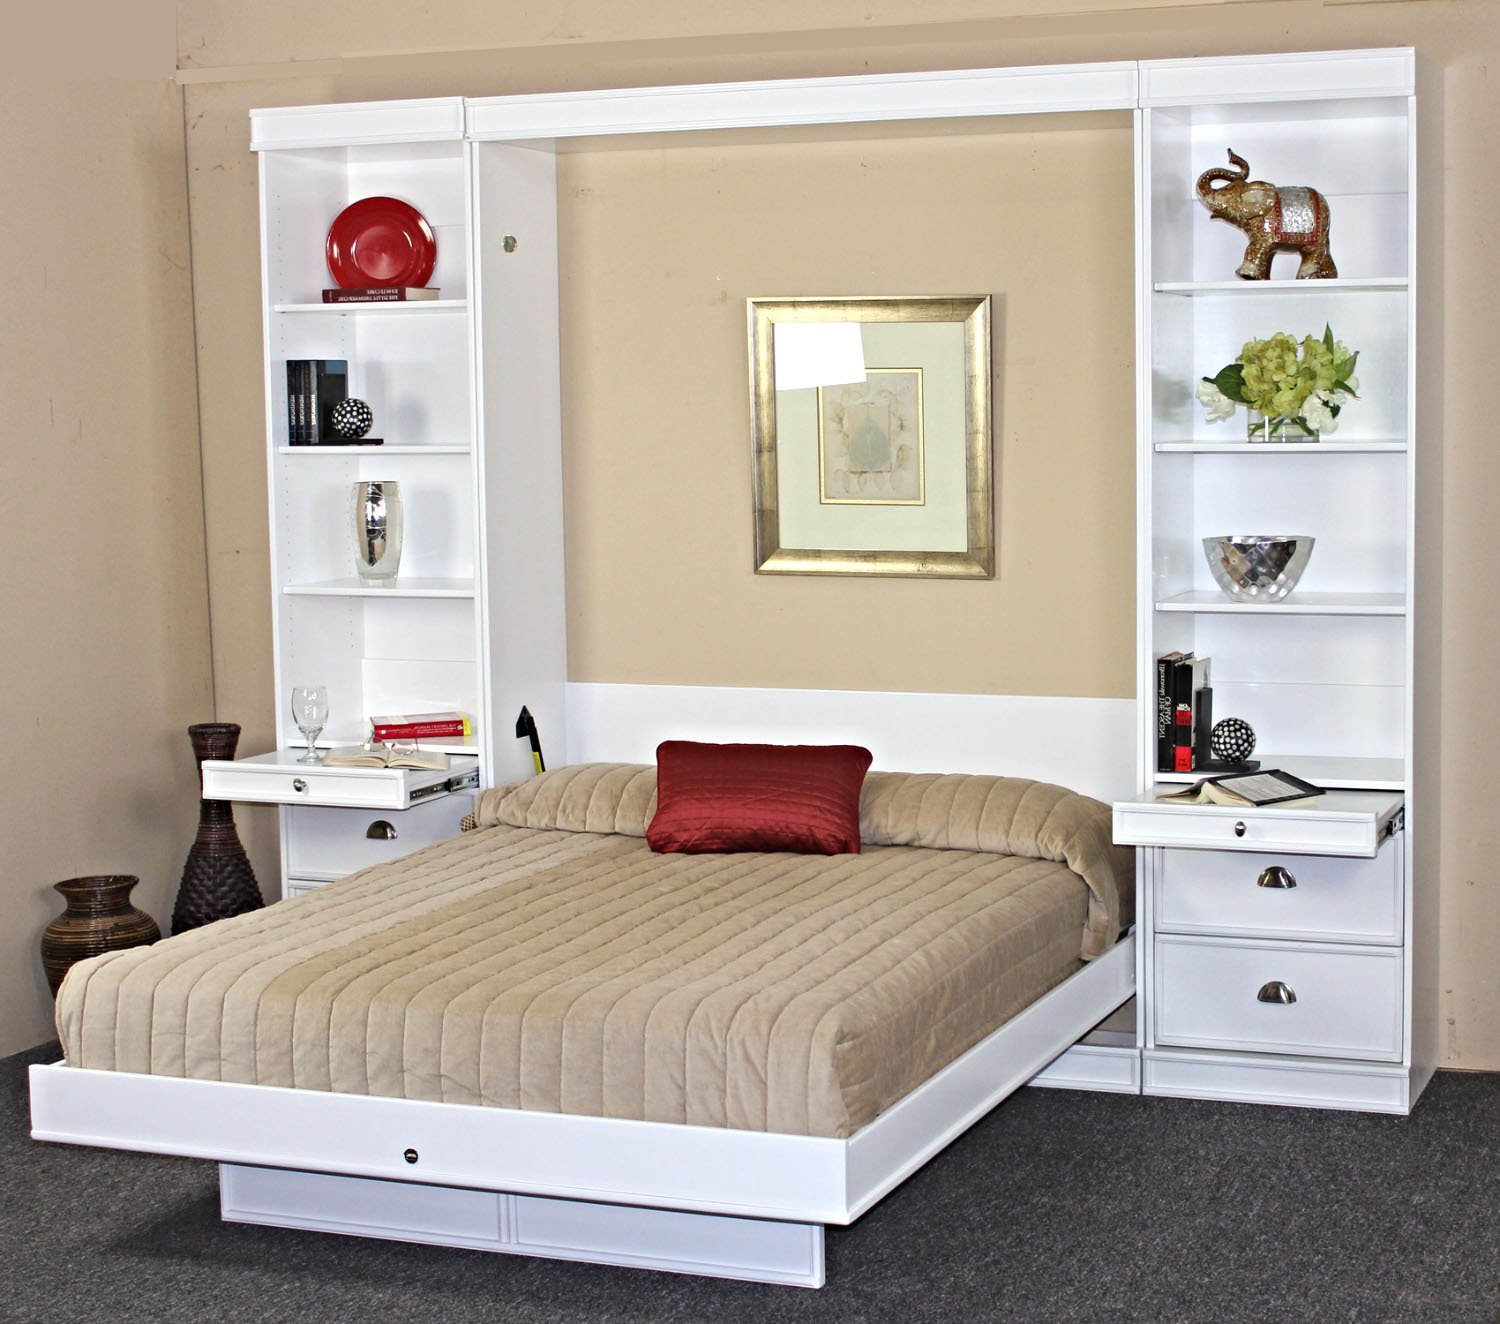 Bedroom Furniture Bristol Bristol Birch Vertical Wall Bed W Table By Wallbeds